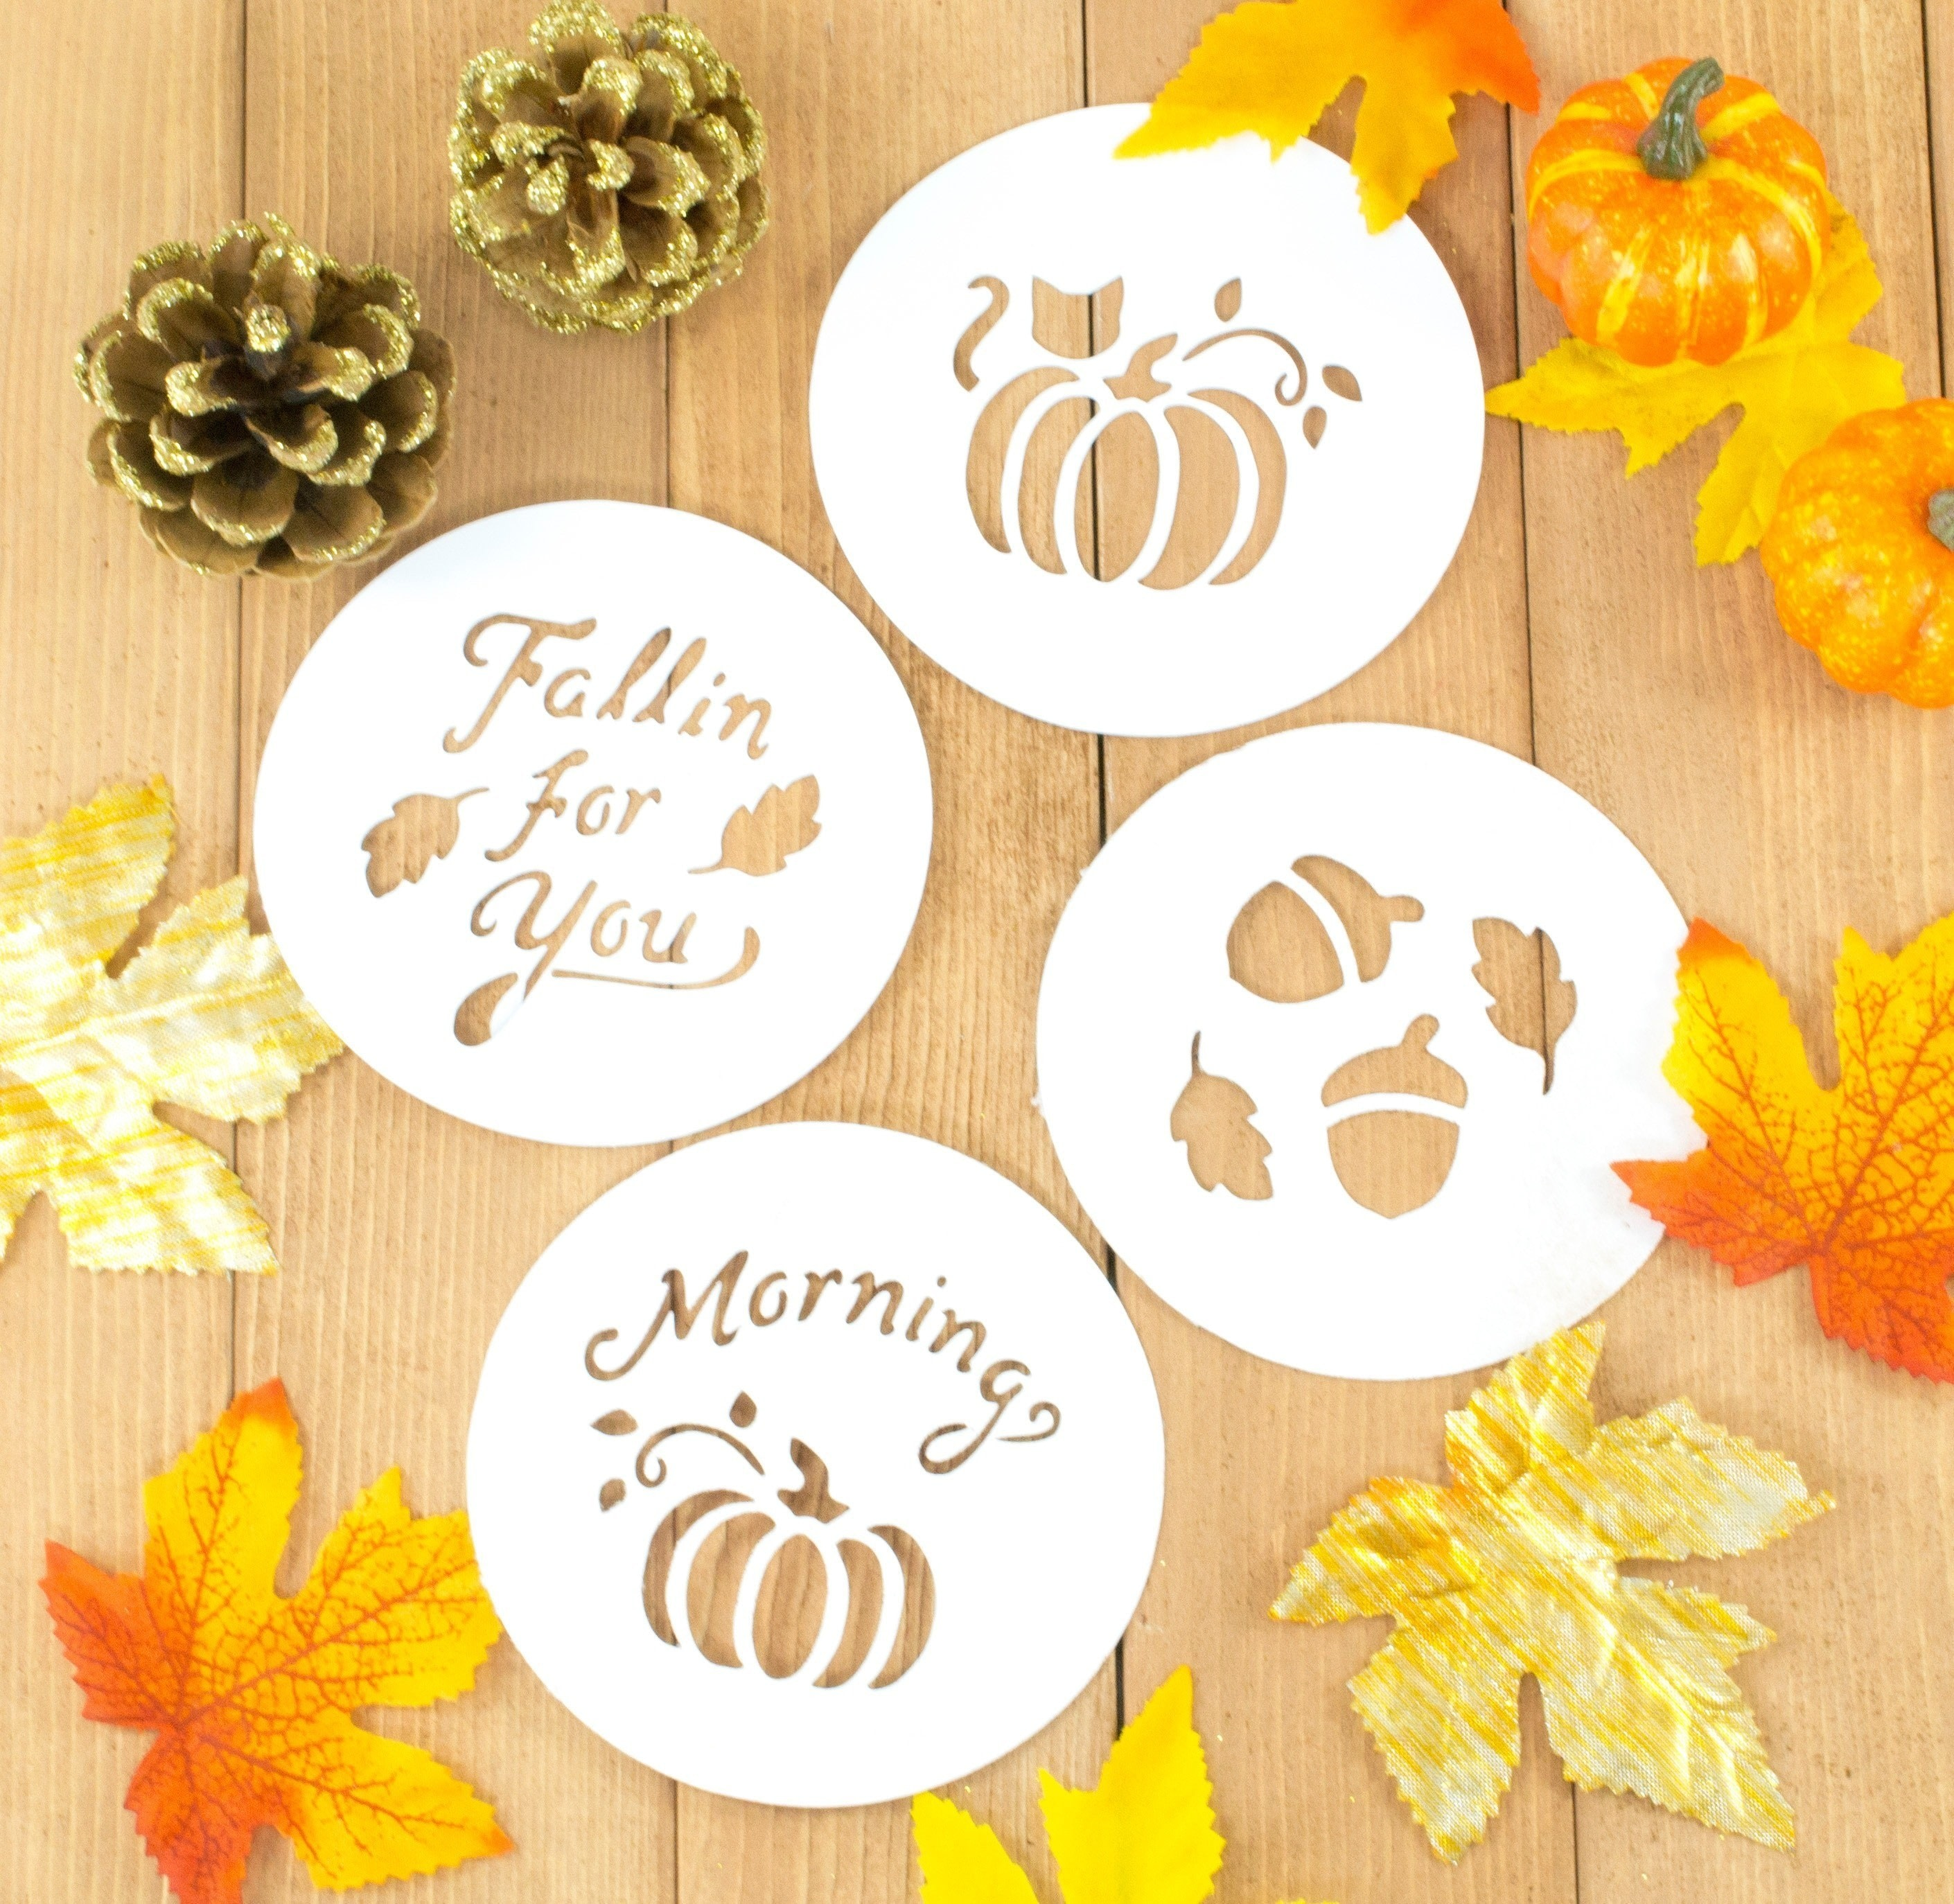 Diy Fall Latte Art Stencils 183 How To Make A Stencil 183 Papercraft On Cut Out Keep